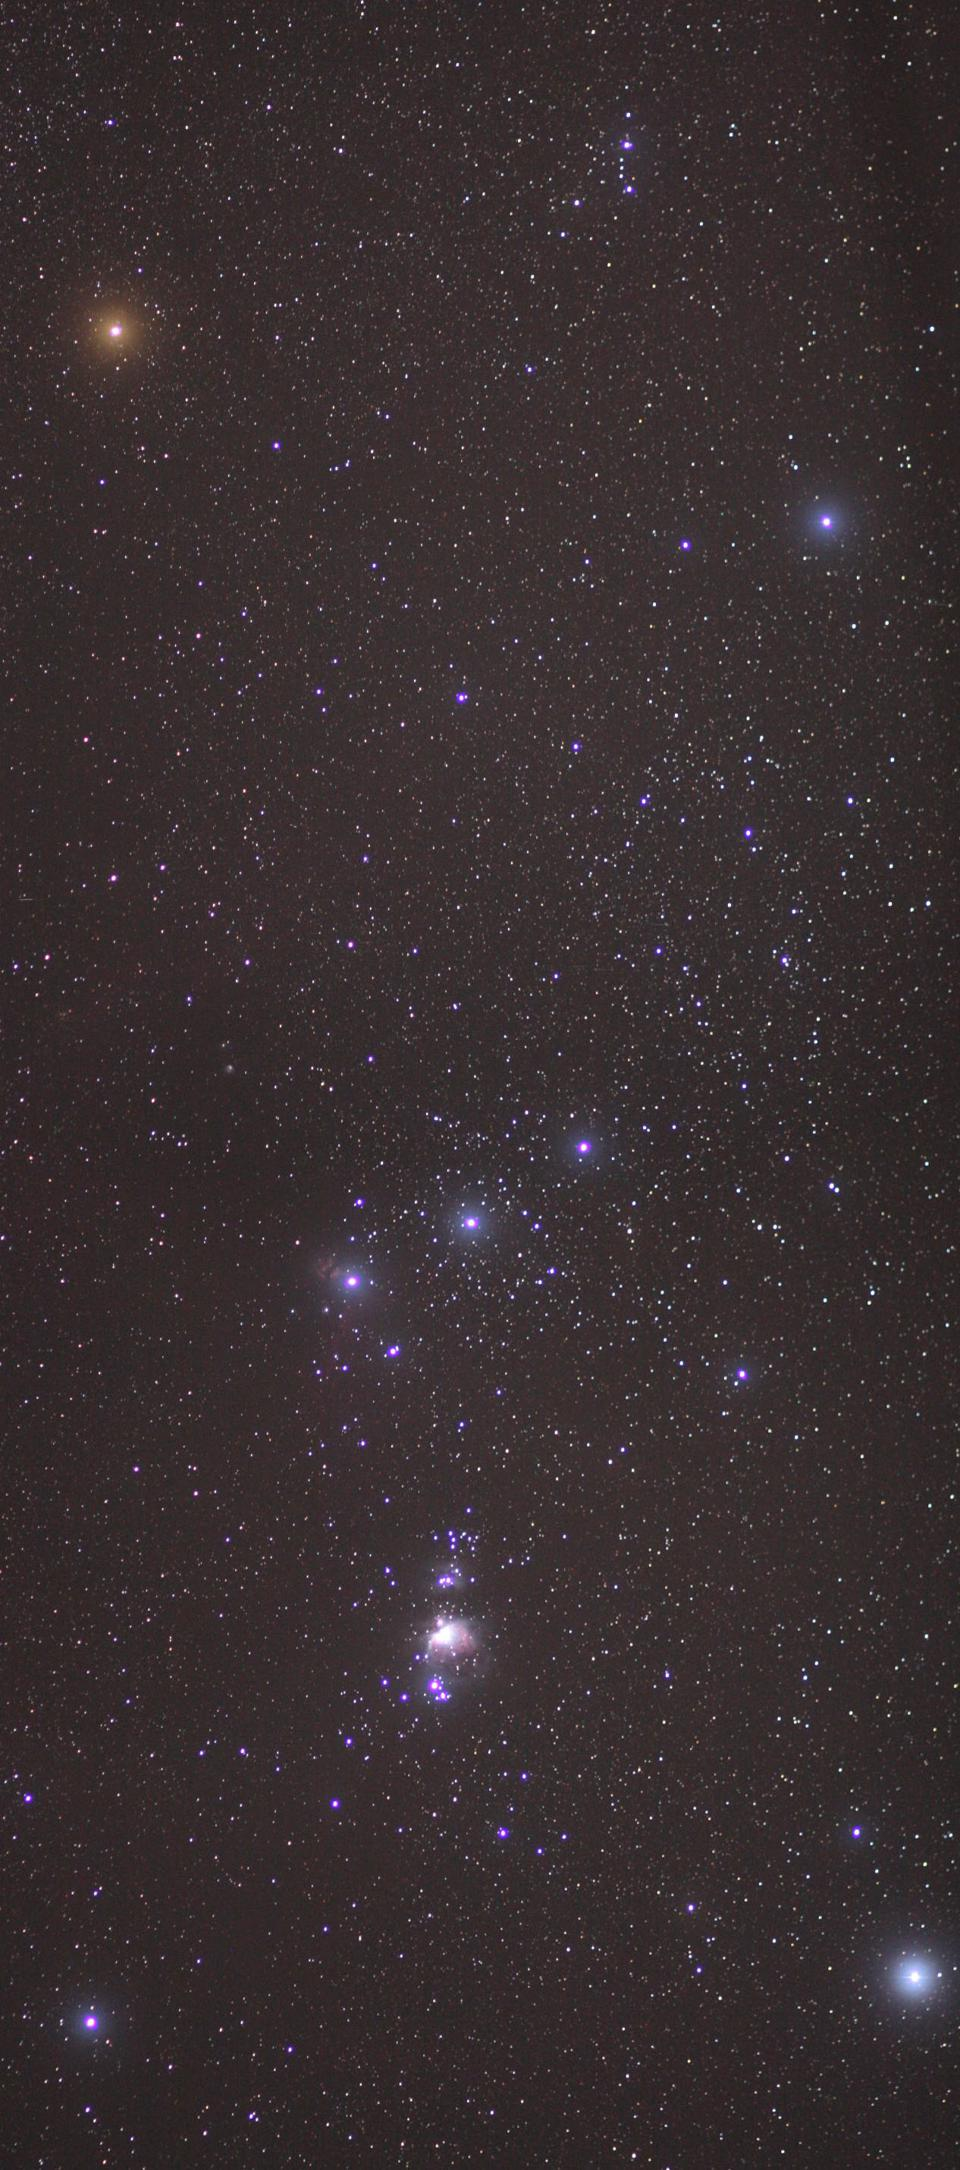 Wide field amateur view of Orion as captured with a digital camera.